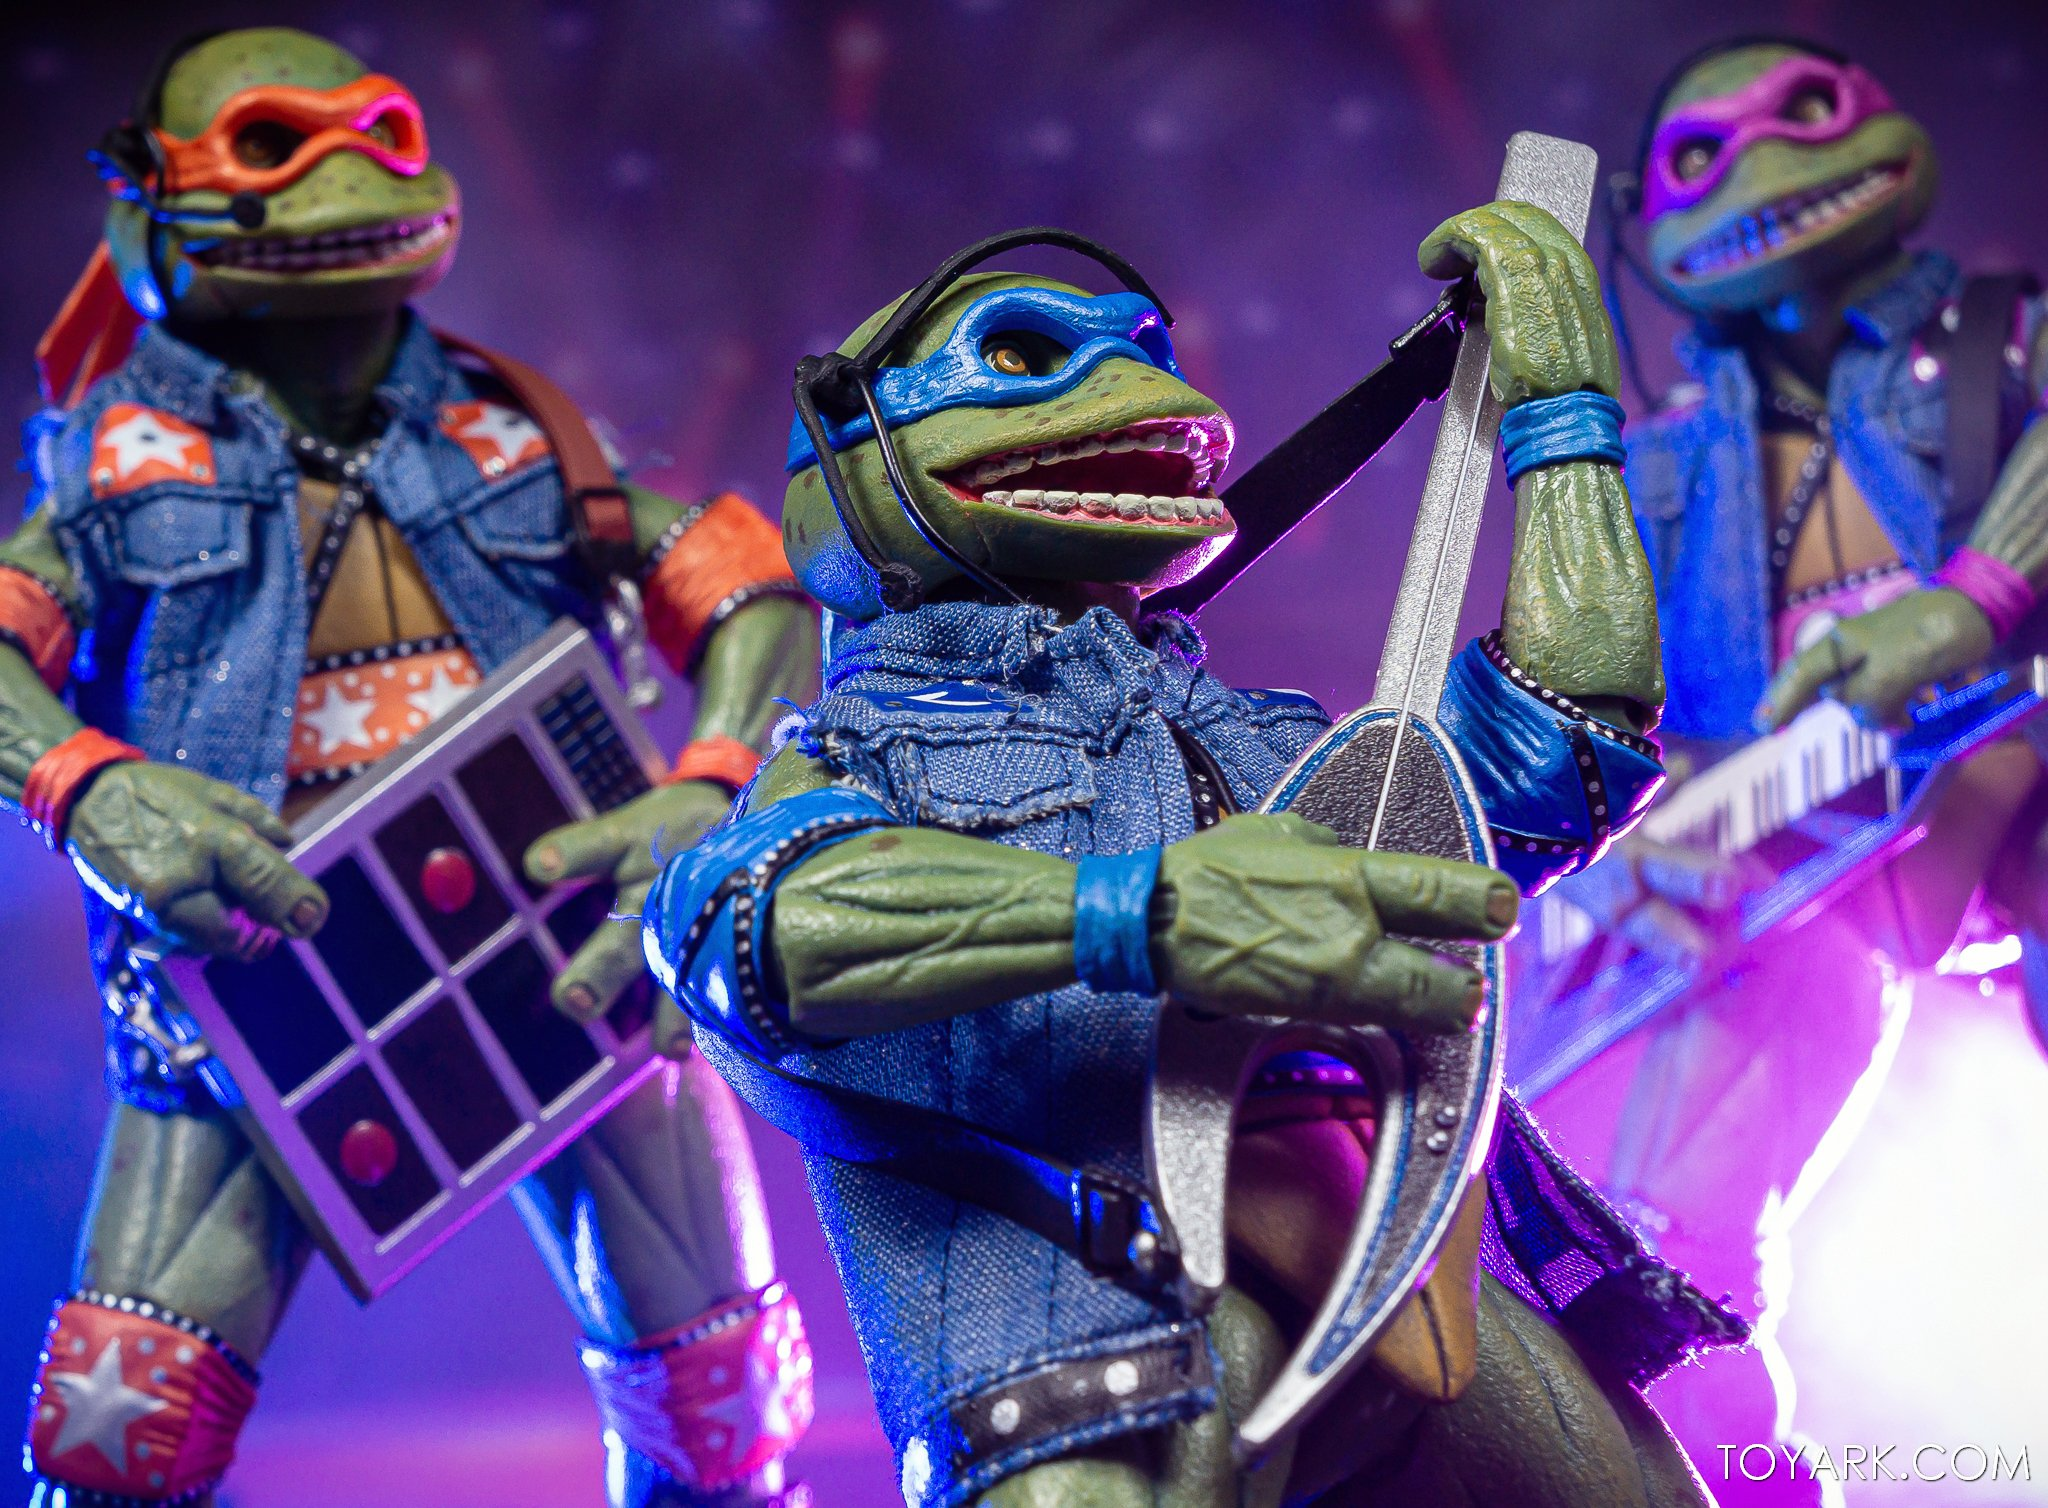 https://news.toyark.com/wp-content/uploads/sites/4/2020/07/SDCC-2020-TMNT-Musical-Mutagen-Tour-072.jpg